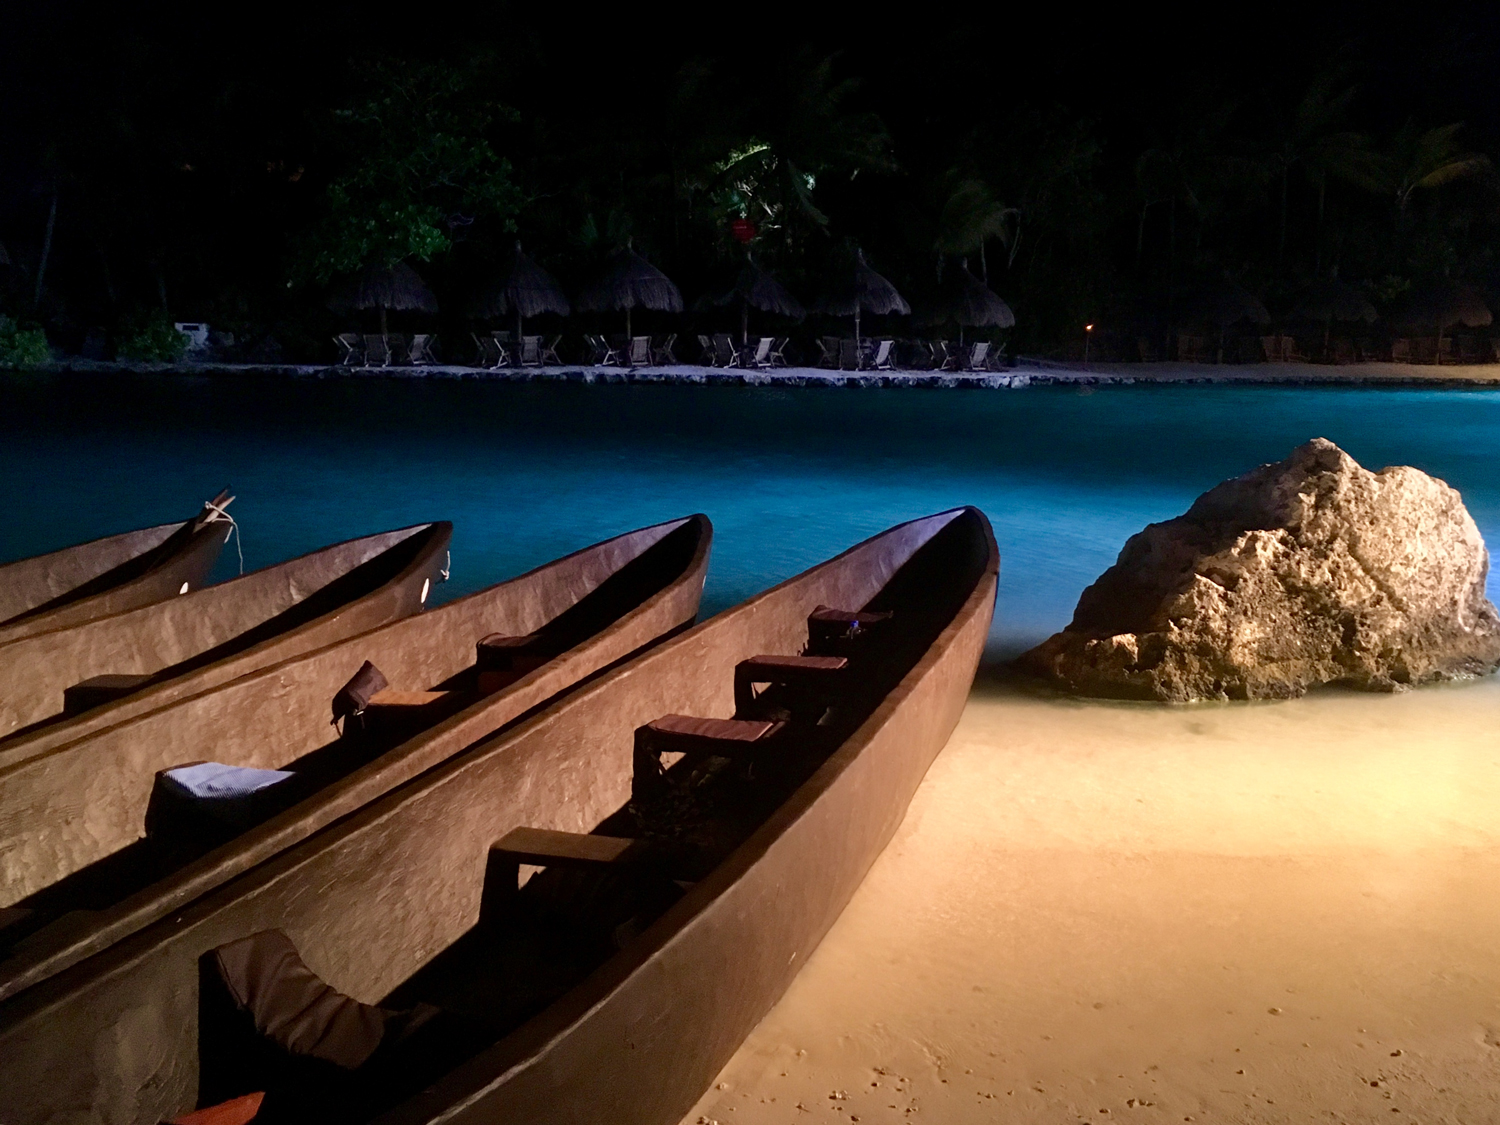 Replica canoes for the crossing to Cozumel.